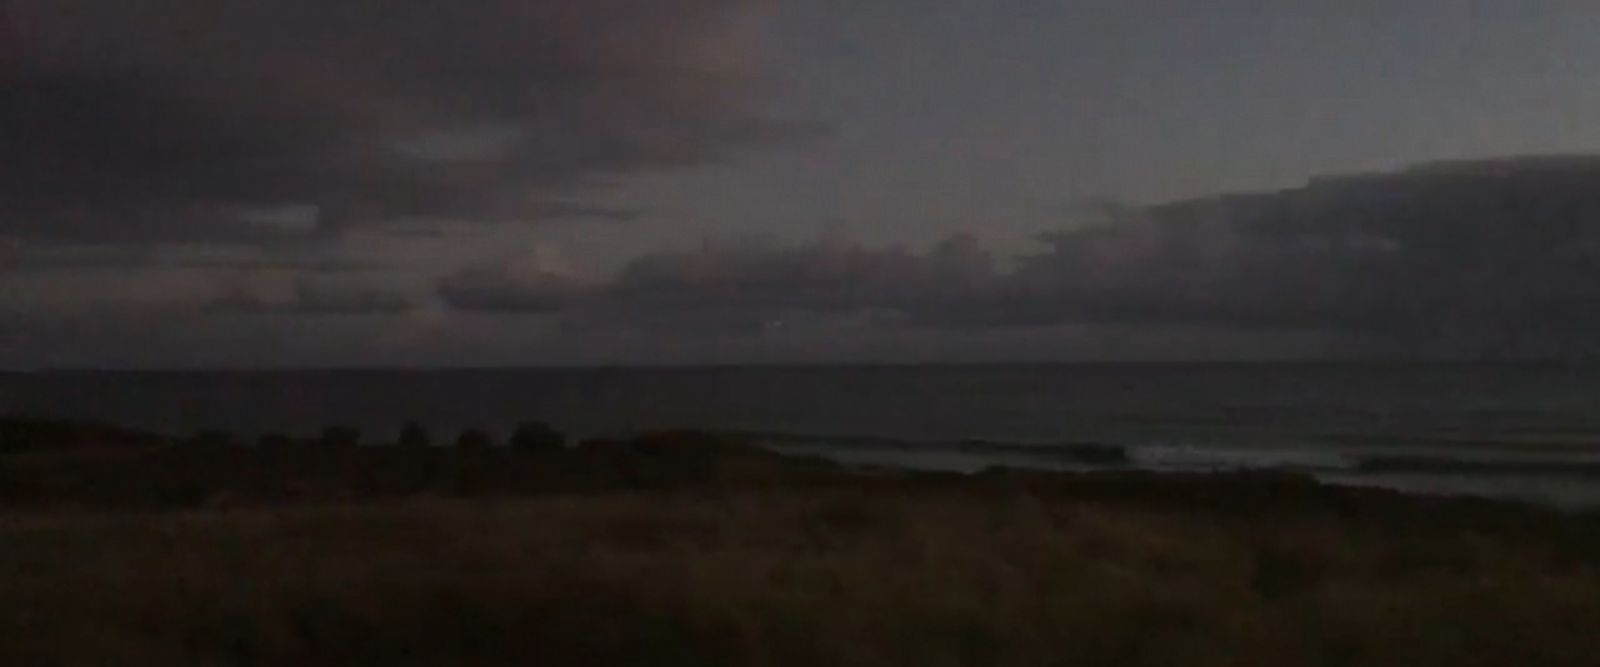 VIDEO: A debris field was spotted near Kaena Point on the island of Oahu.